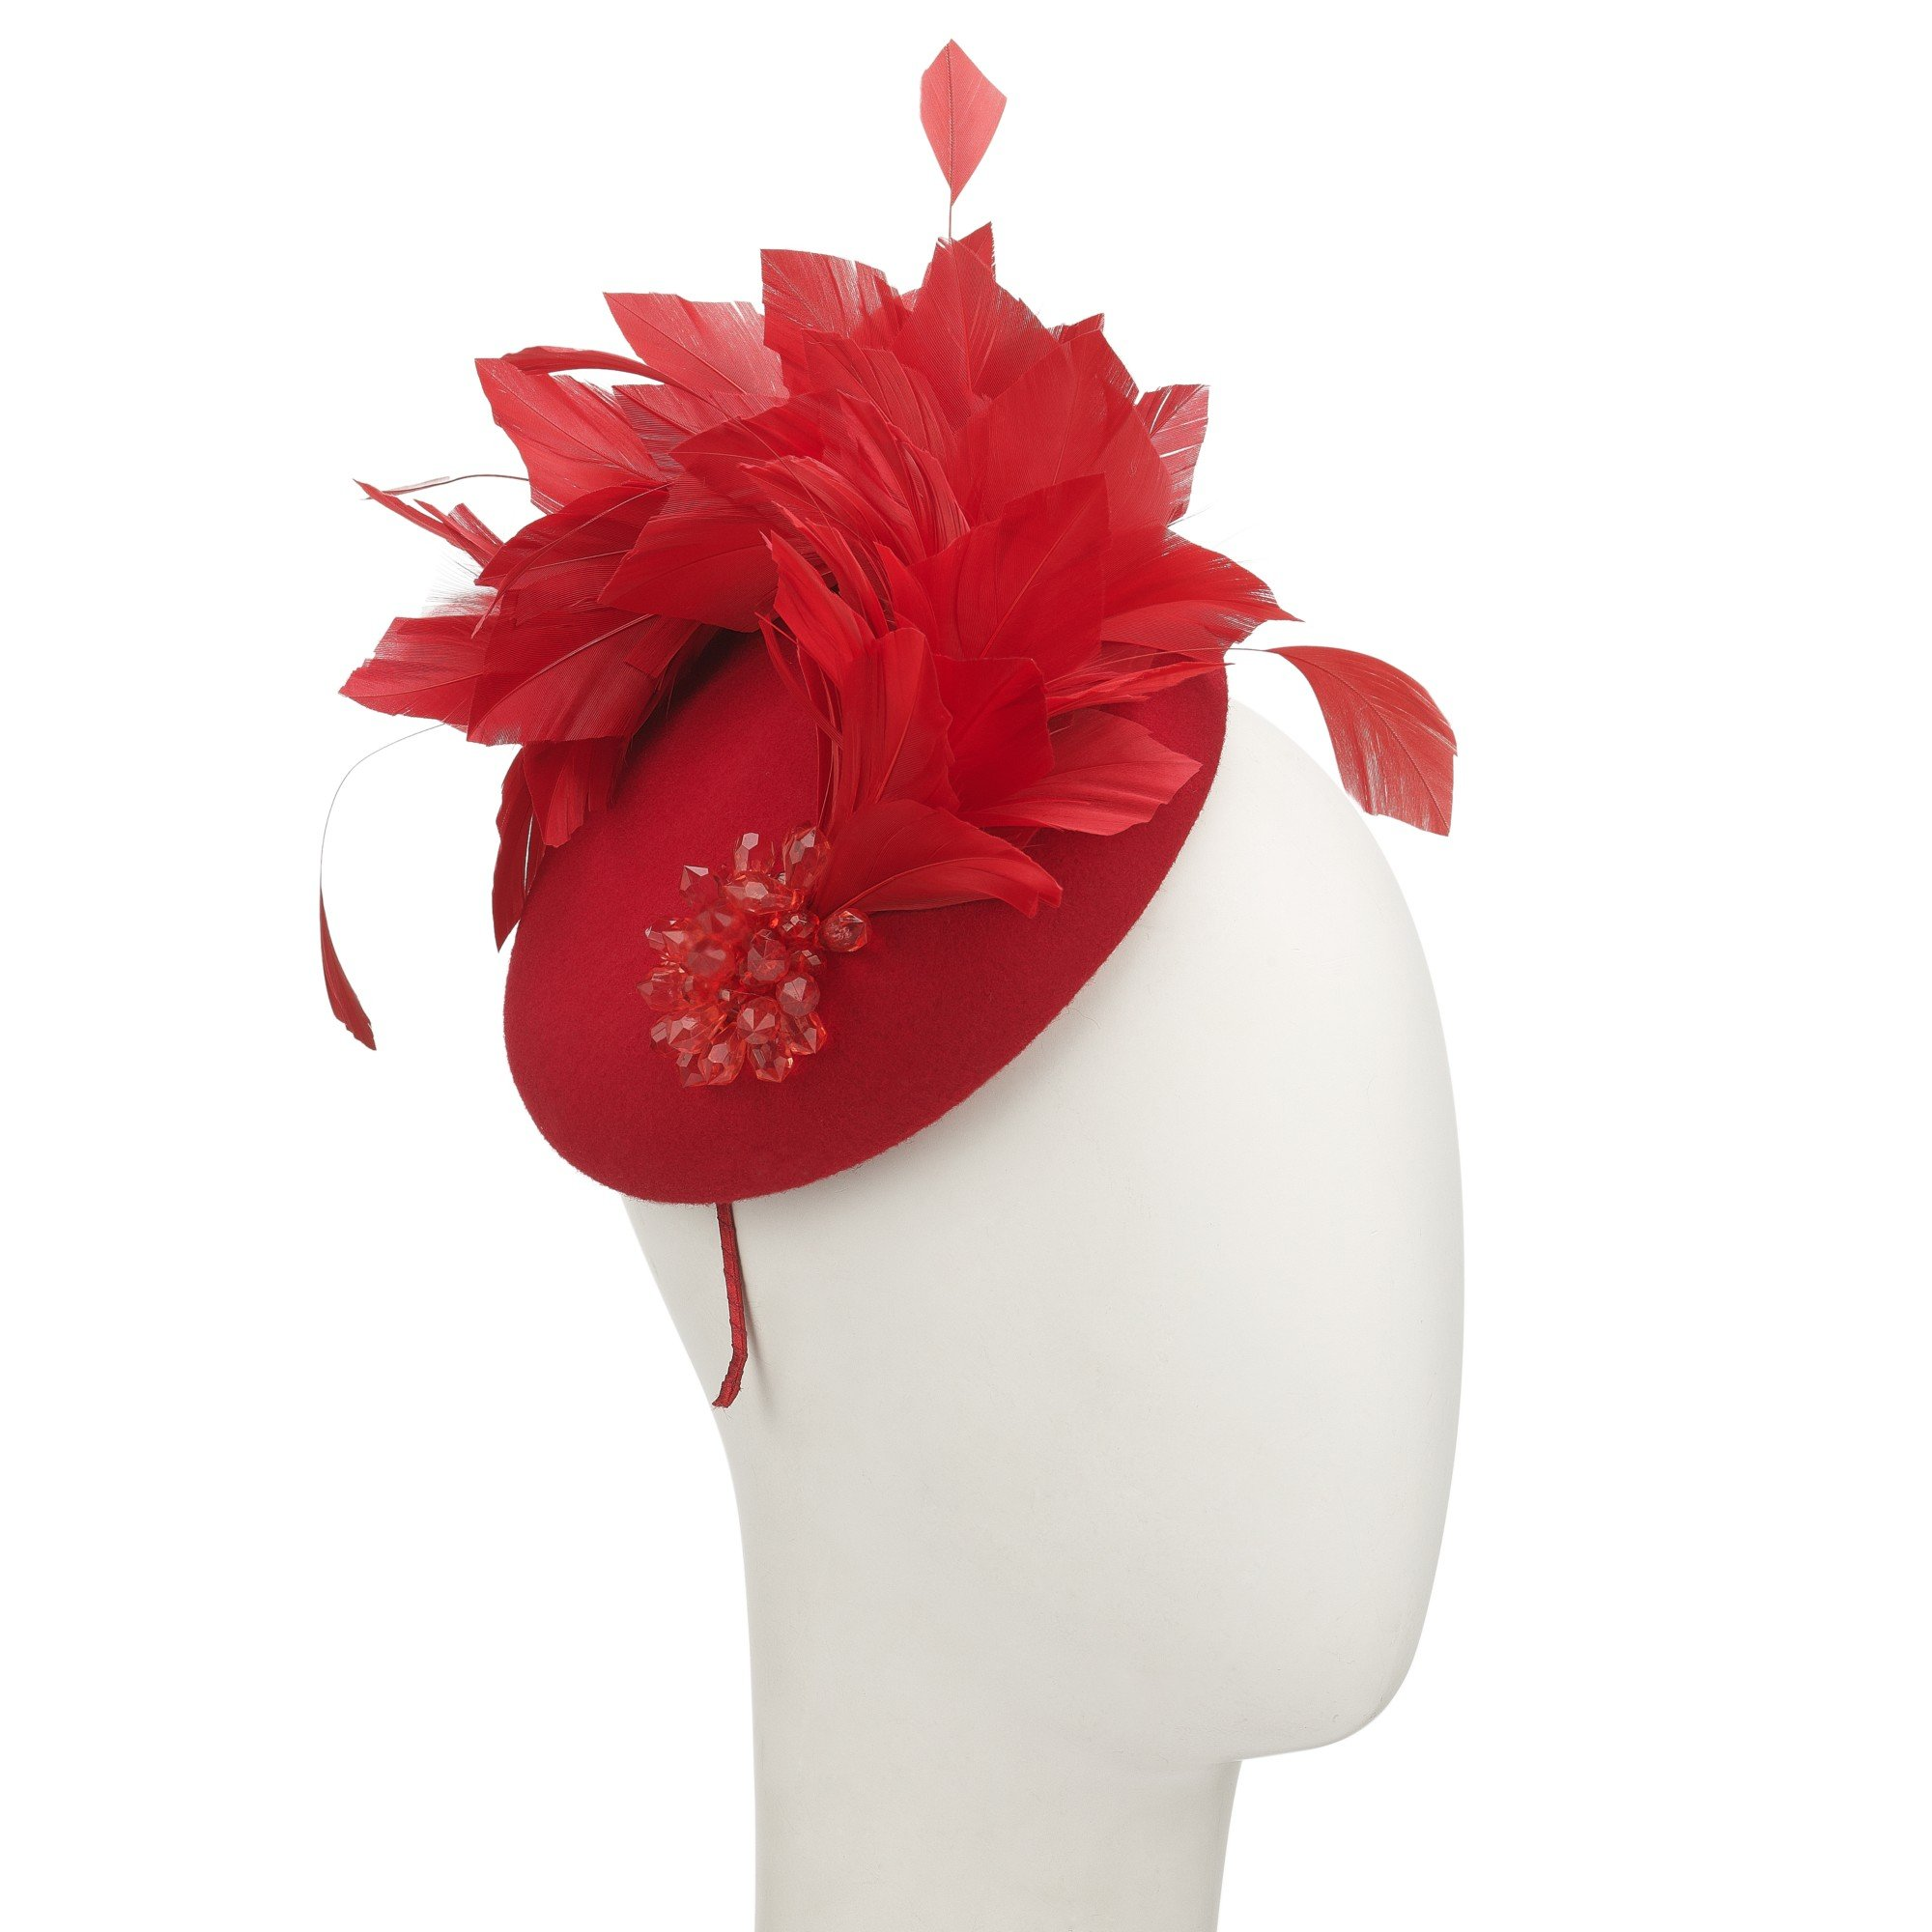 John Lewis Tia Beaded Feather Pillbox Fascinator in Red - Lyst 2c7e5cb020d